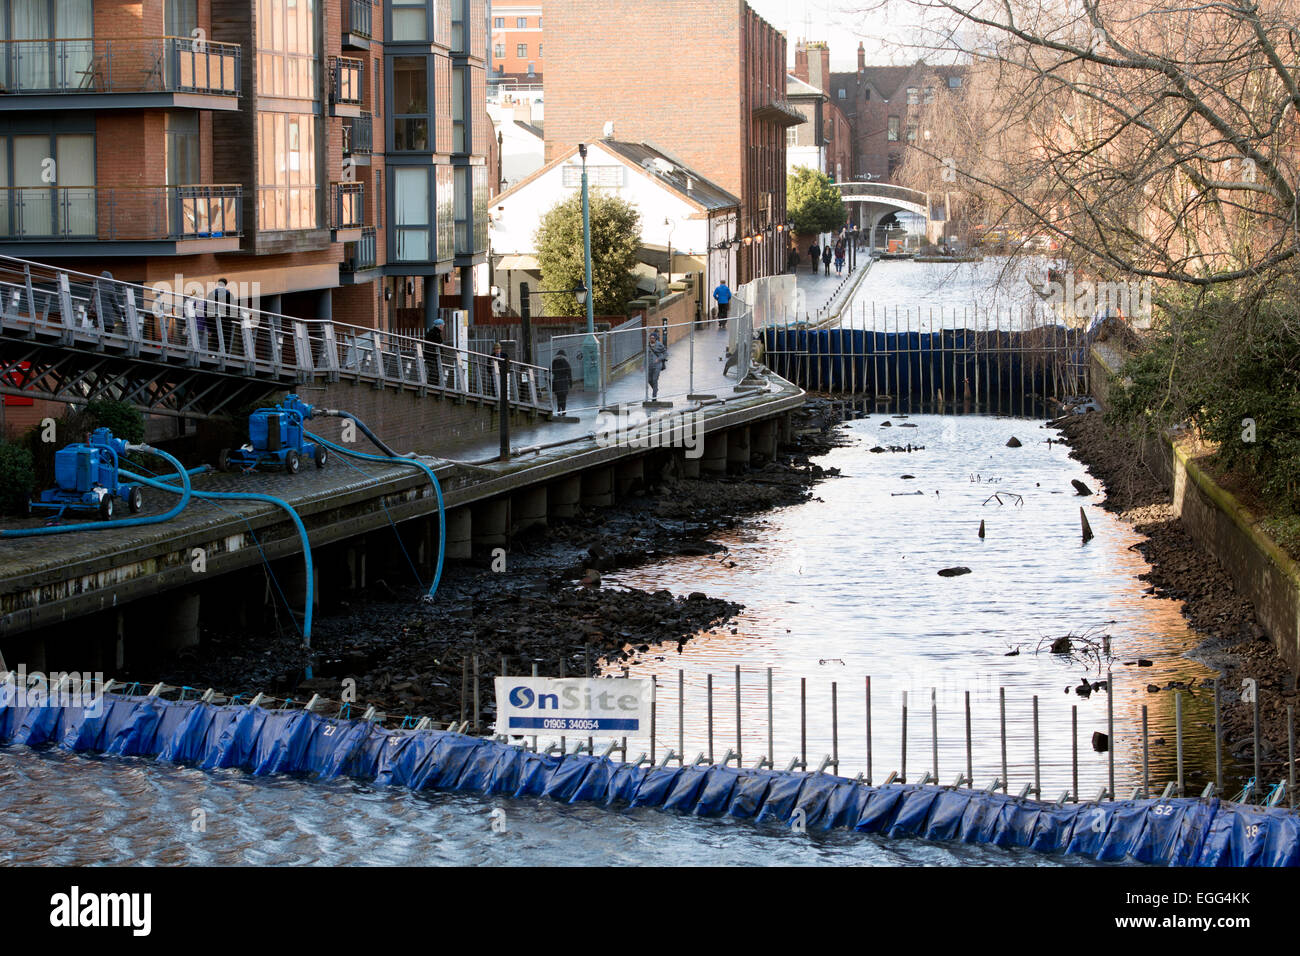 Birmingham, West Midlands, UK. 24th February, 2015. A 200m stretch of the Worcestershire and Birmingham Canal near - Stock Image